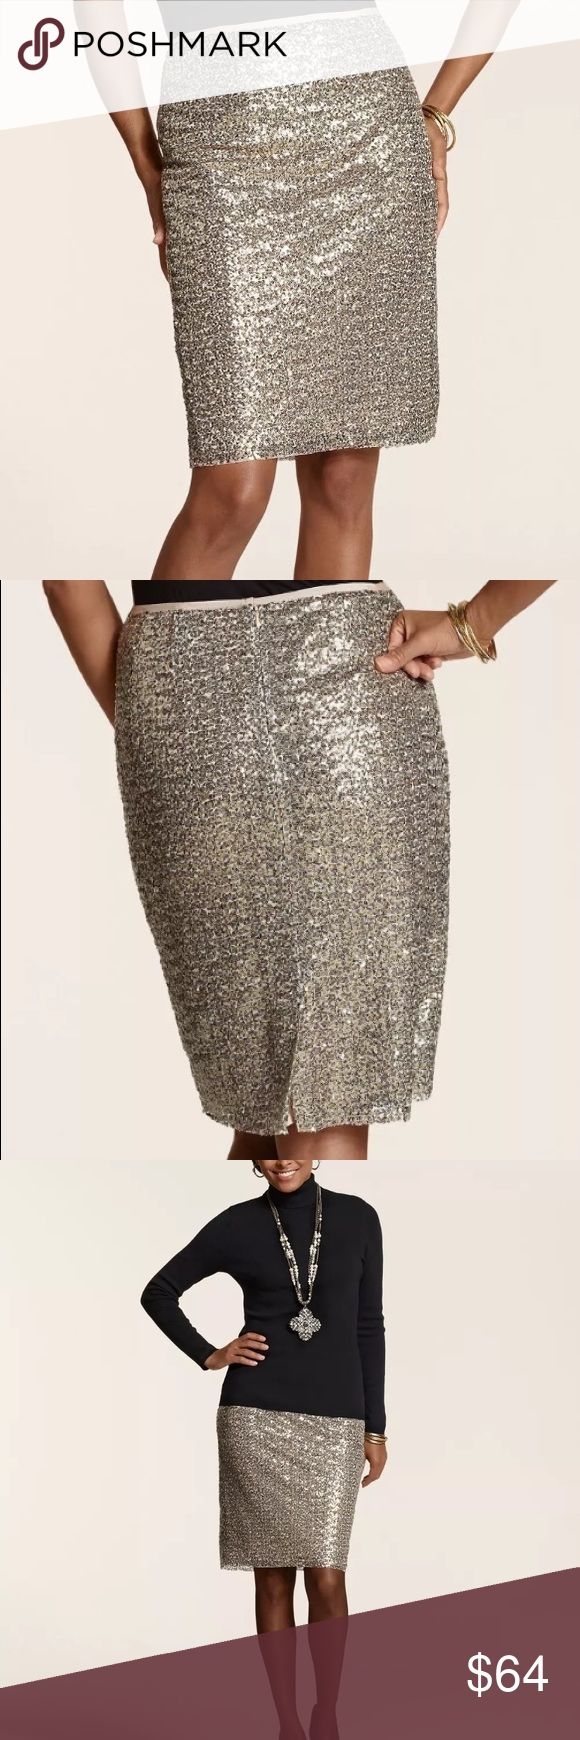 """Chicos Sequin Stephanie Gold Cocktail Sz 1 NEW Chicos Womens Skirt Sequin Pencil Stephanie Shimmer Gold Cocktail Size 1 New with tags The party-perfect pencil skirt in paillette-covered mesh. Lots of dazzle, loads of sparkle. •Grosgrain-ribbon waistband. •Tailored with a zip closure at the back. •Back kick-pleat. •Length: 24"""". •Shell and lining: 100% polyester. •Hand wash. Imported. Chico's Skirts Pencil"""